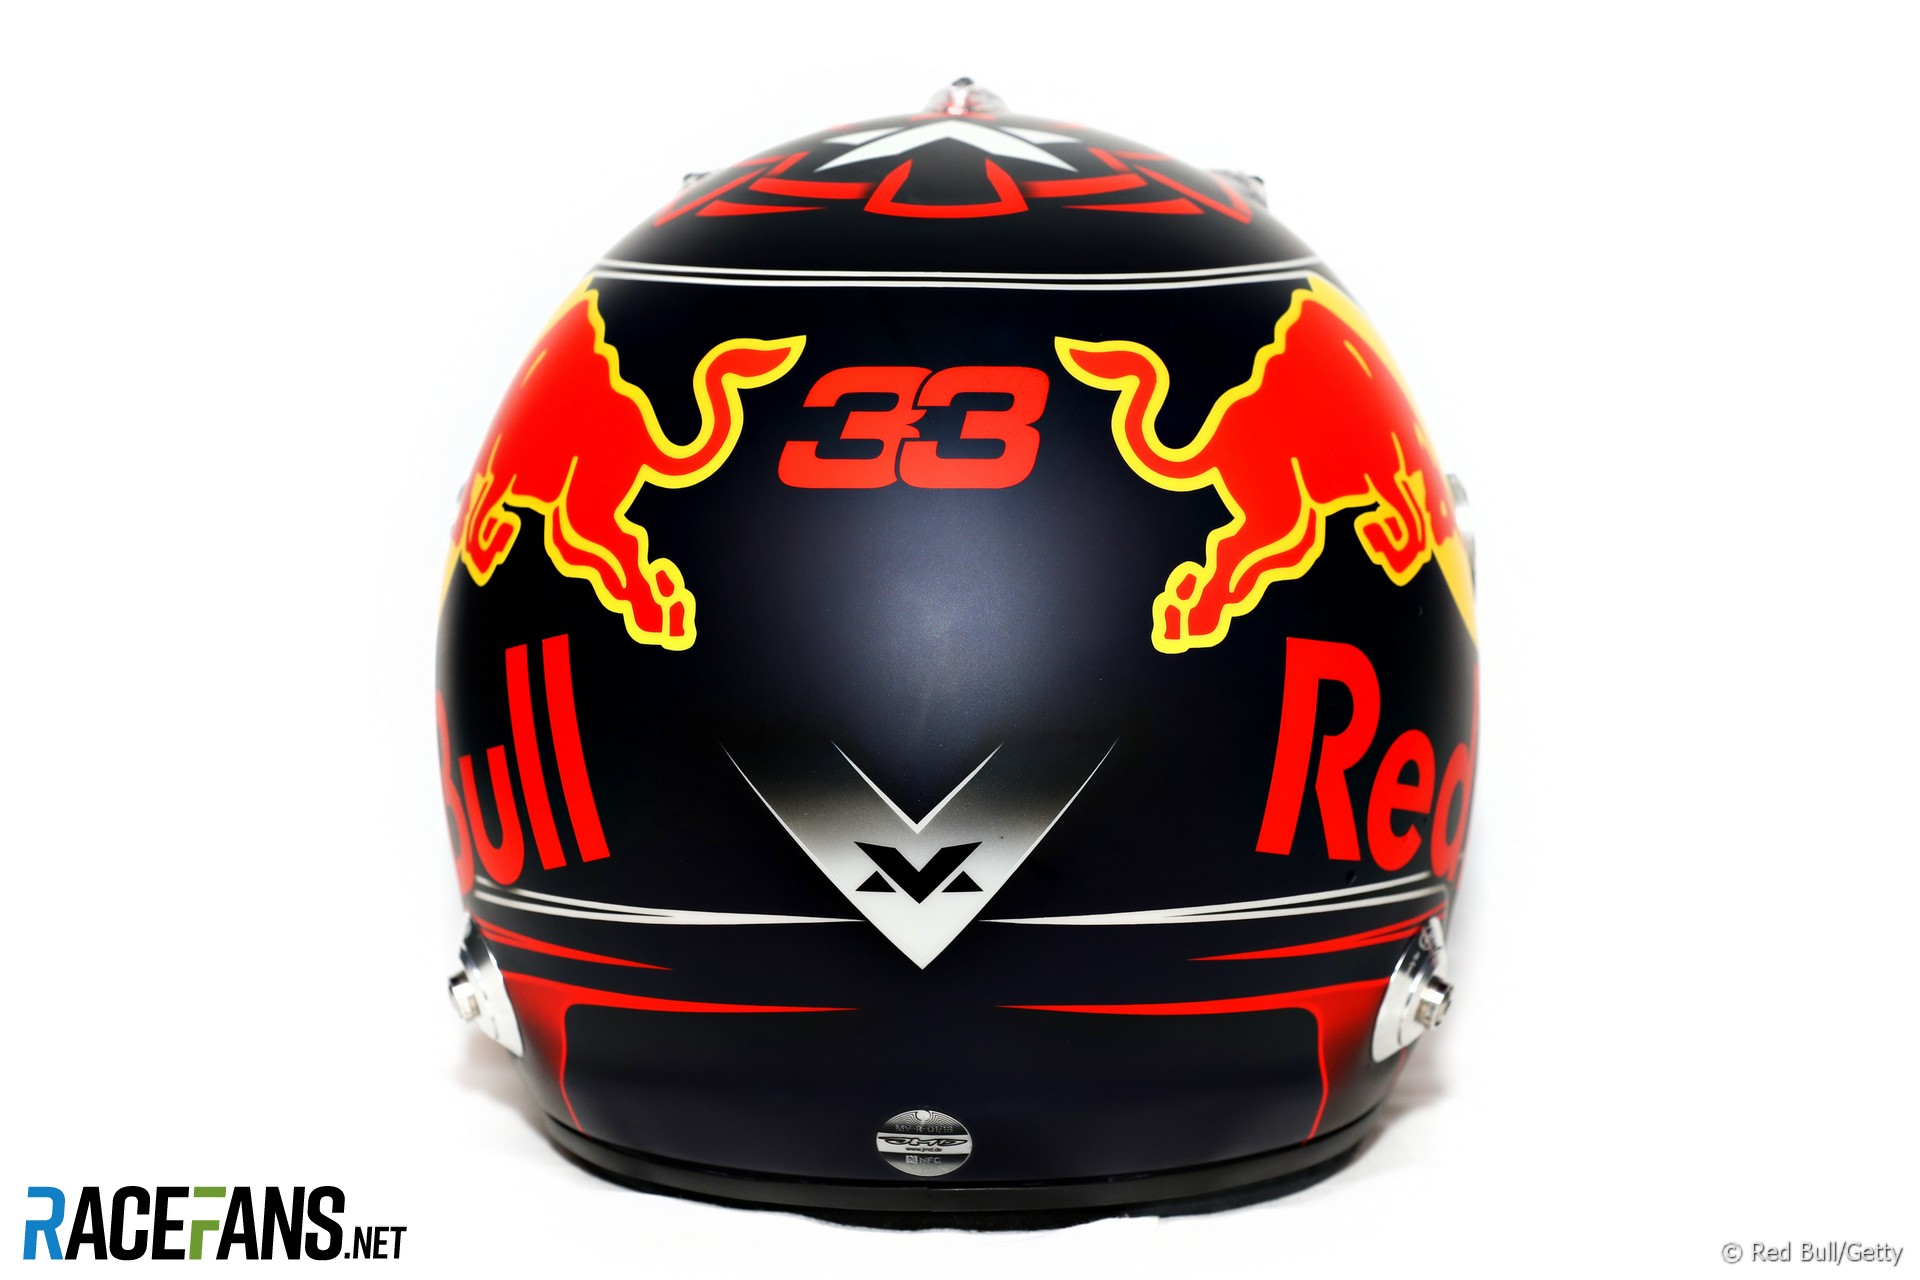 max verstappen red bull helmet 2018 racefans. Black Bedroom Furniture Sets. Home Design Ideas